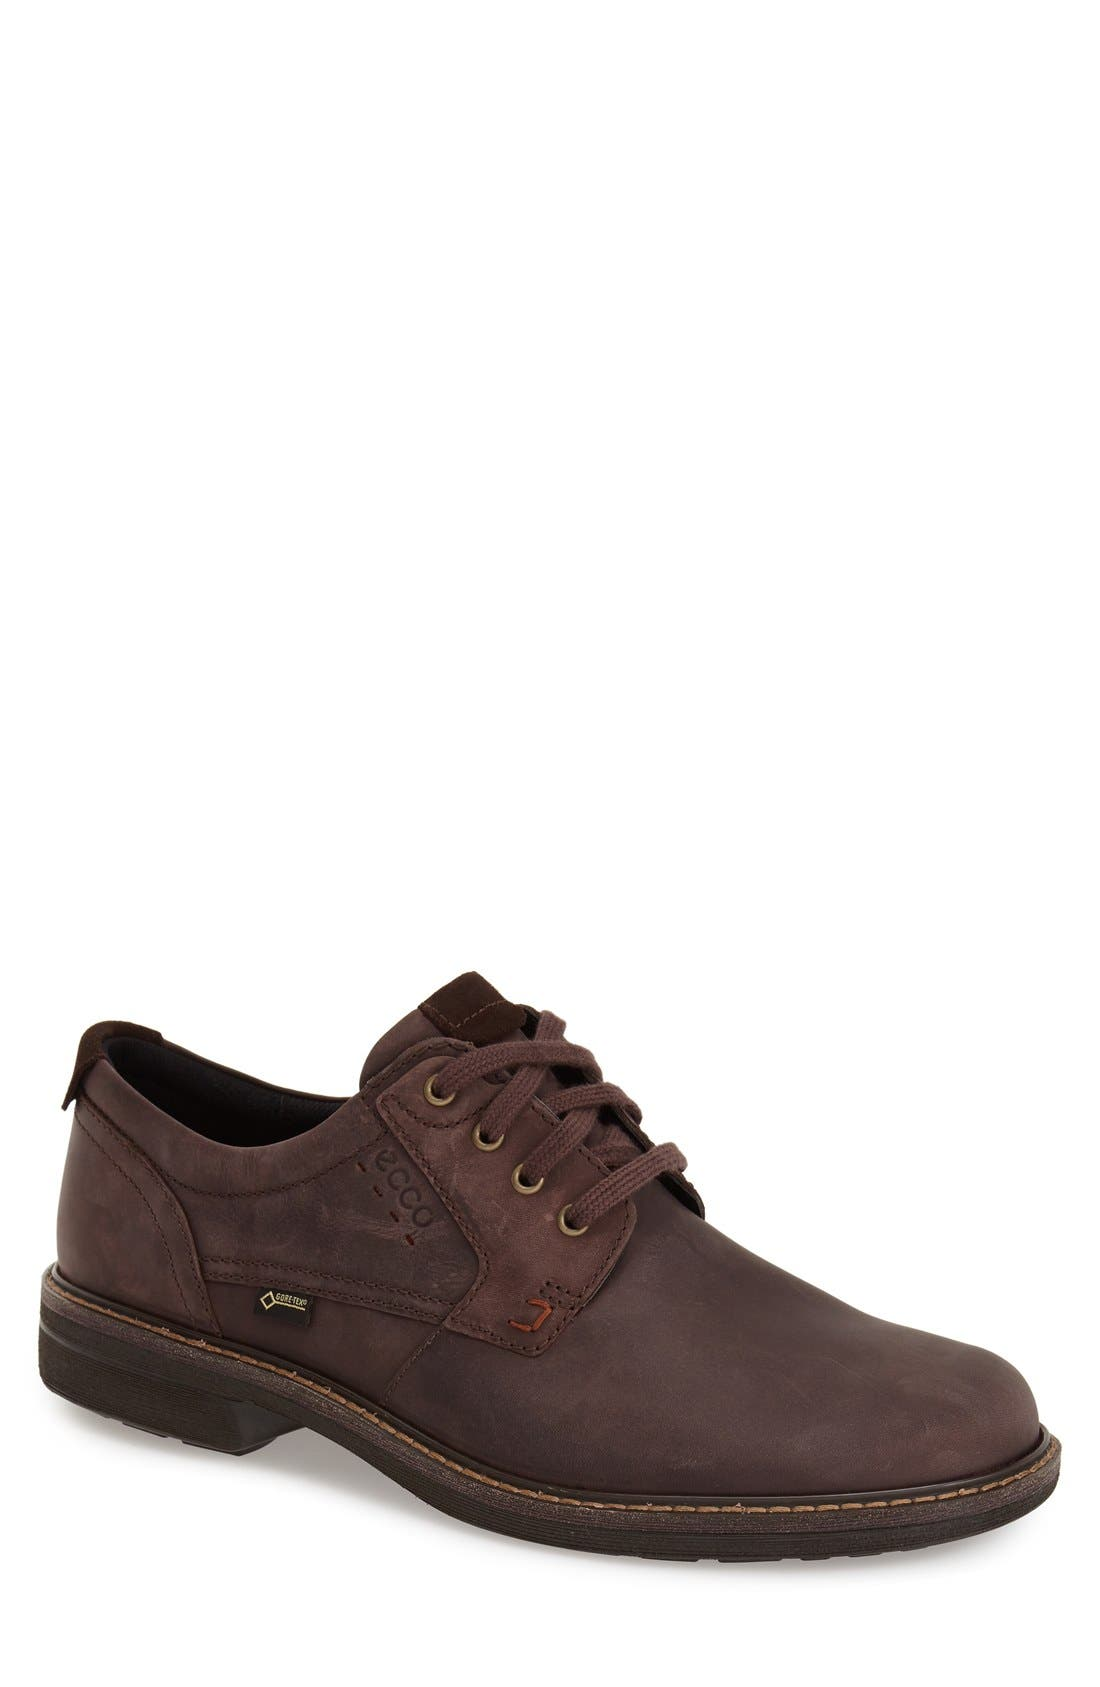 ECCO 'Turn GTX' Waterproof Plain Toe Oxford